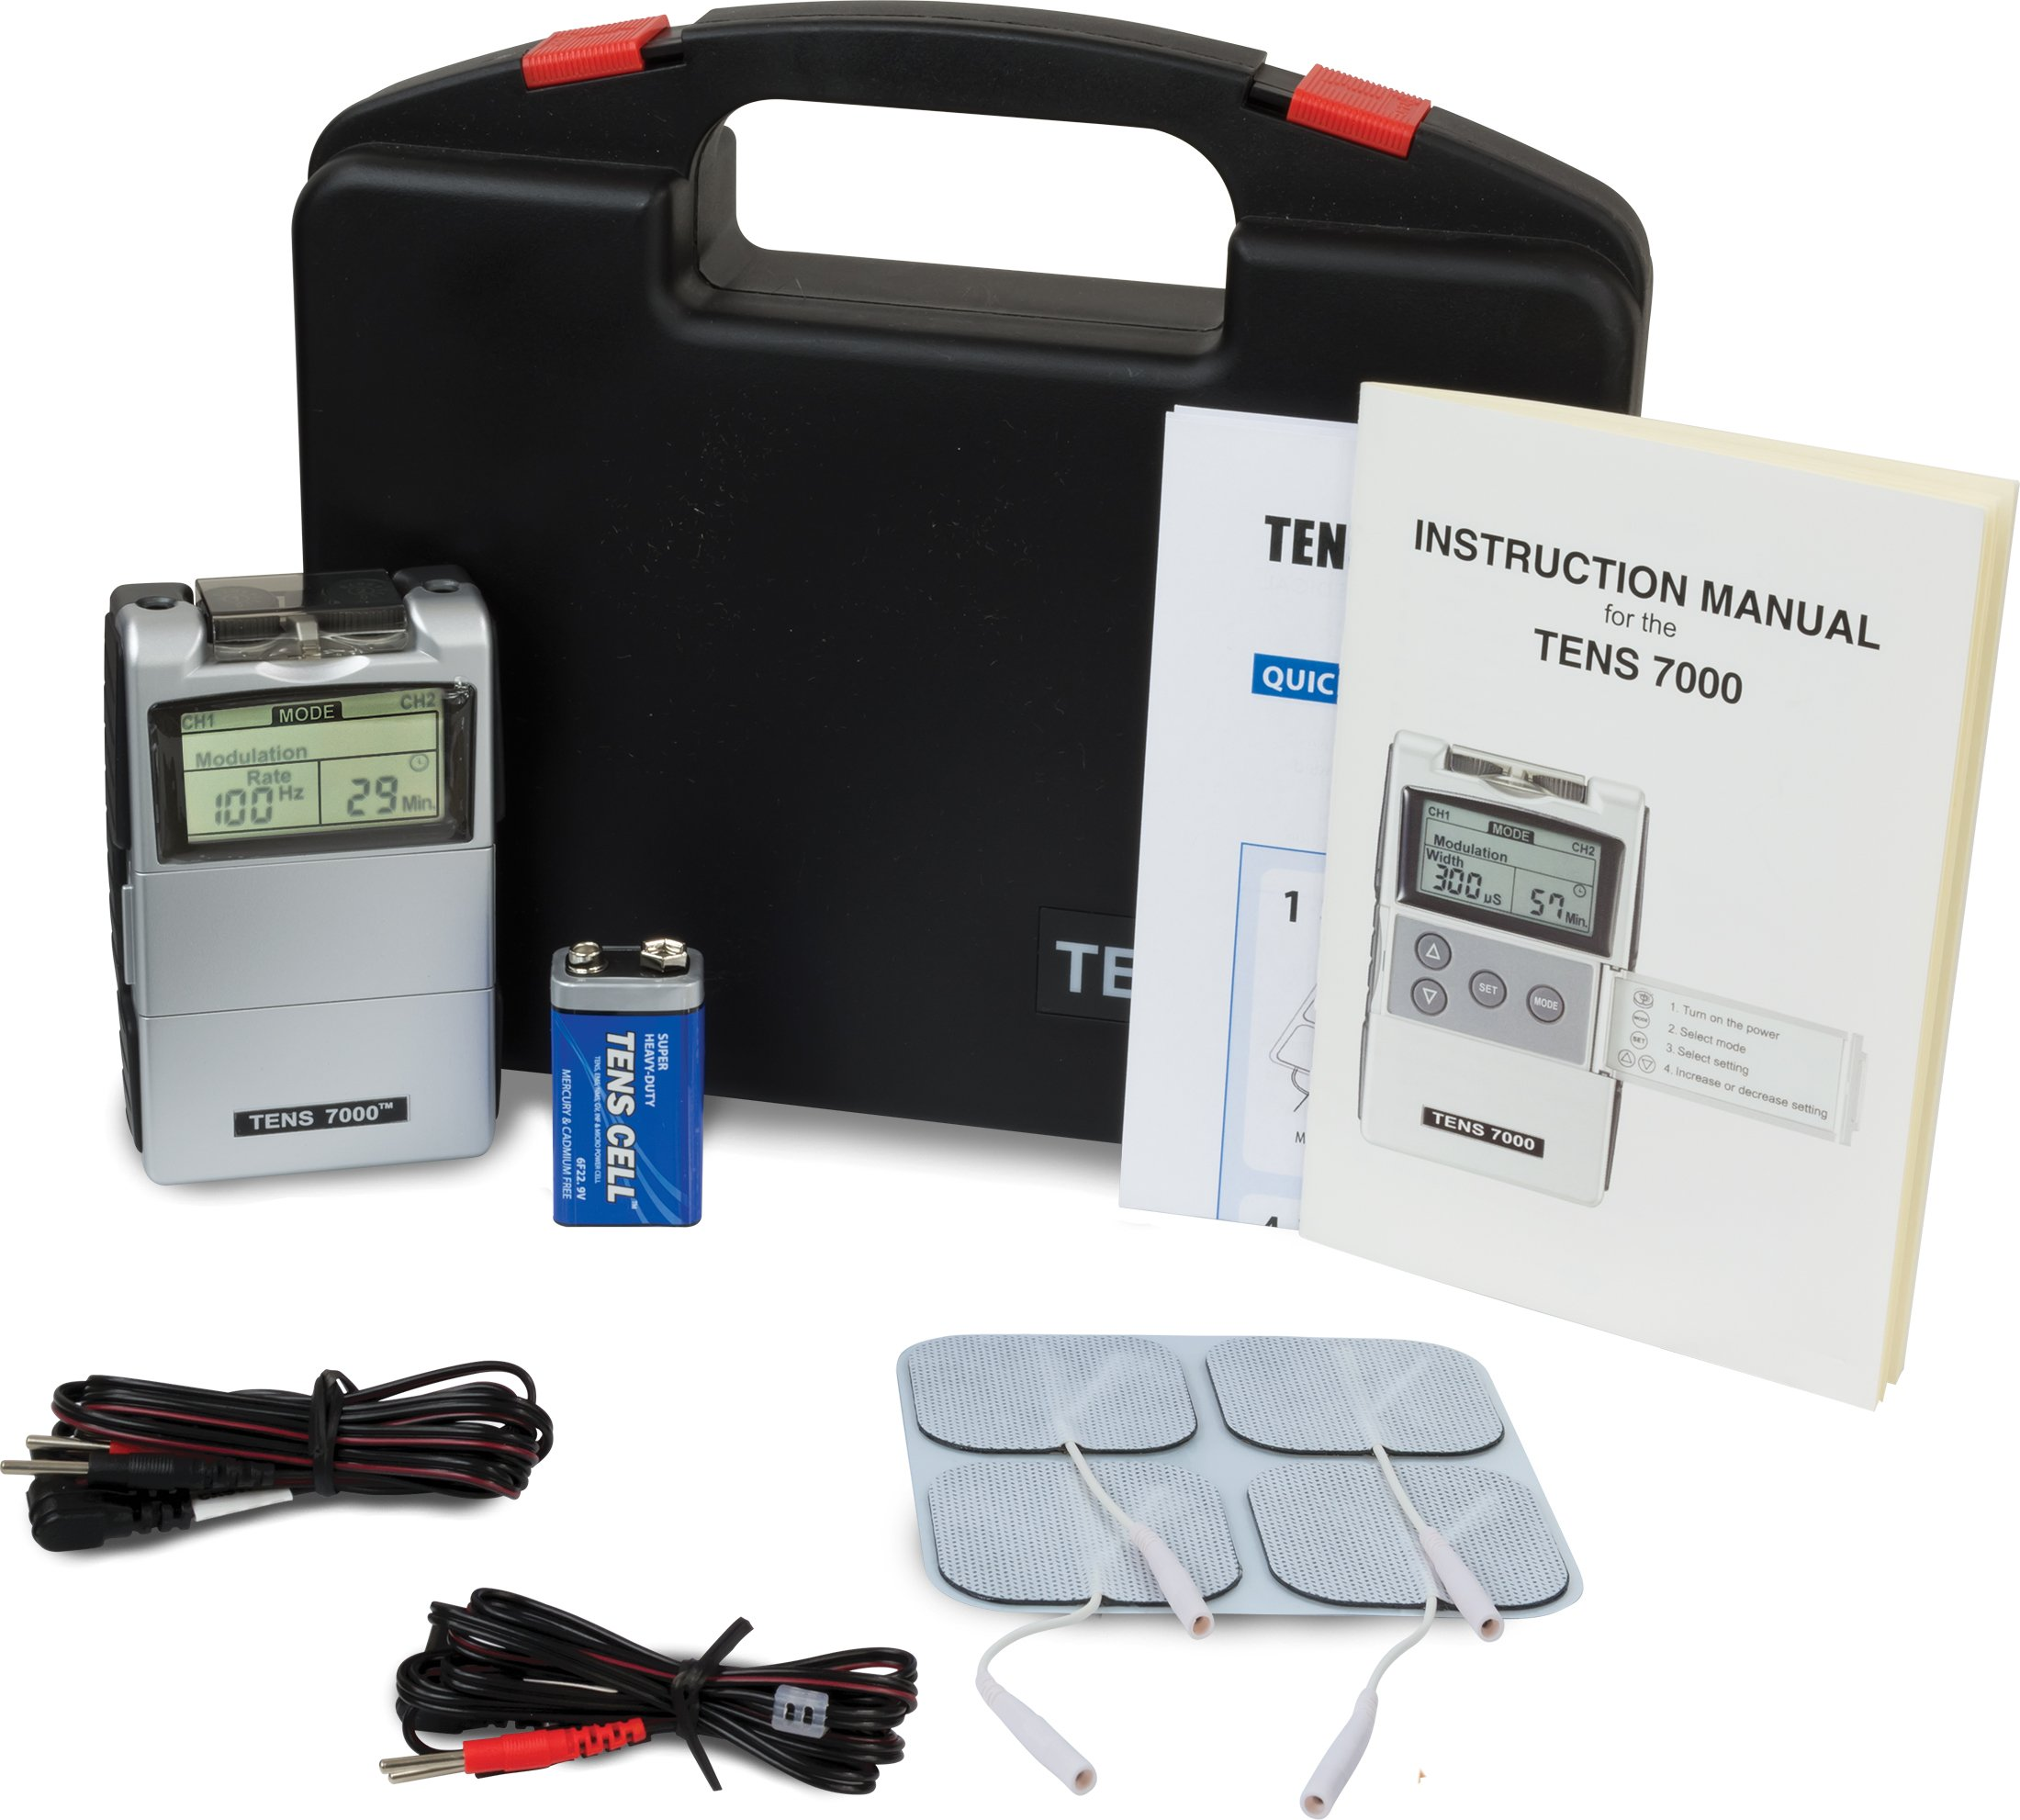 Amazon.com: TENS 7000 2nd Edition Digital TENS Unit with accessories:  Industrial & Scientific